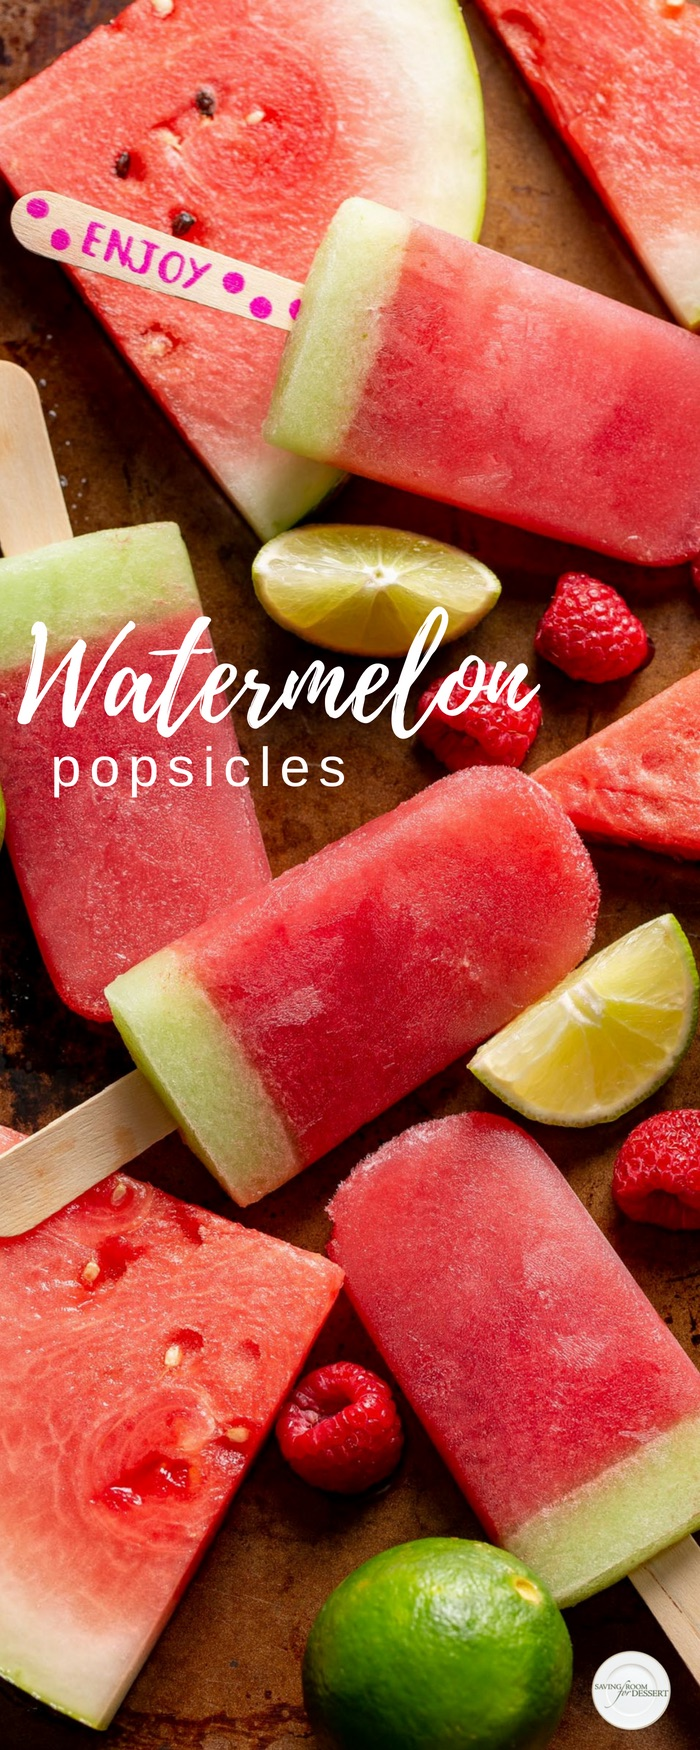 Watermelon Popsicles with raspberry and lime - lightly sweetened and loaded with fresh fruit, these delicious frozen treats are great to have on hand when you NEED a healthy cool-down treat! #savingroomfordessert #popsicle #watermelon #icepops, freshfruitpopsicle #summer #frozentreat